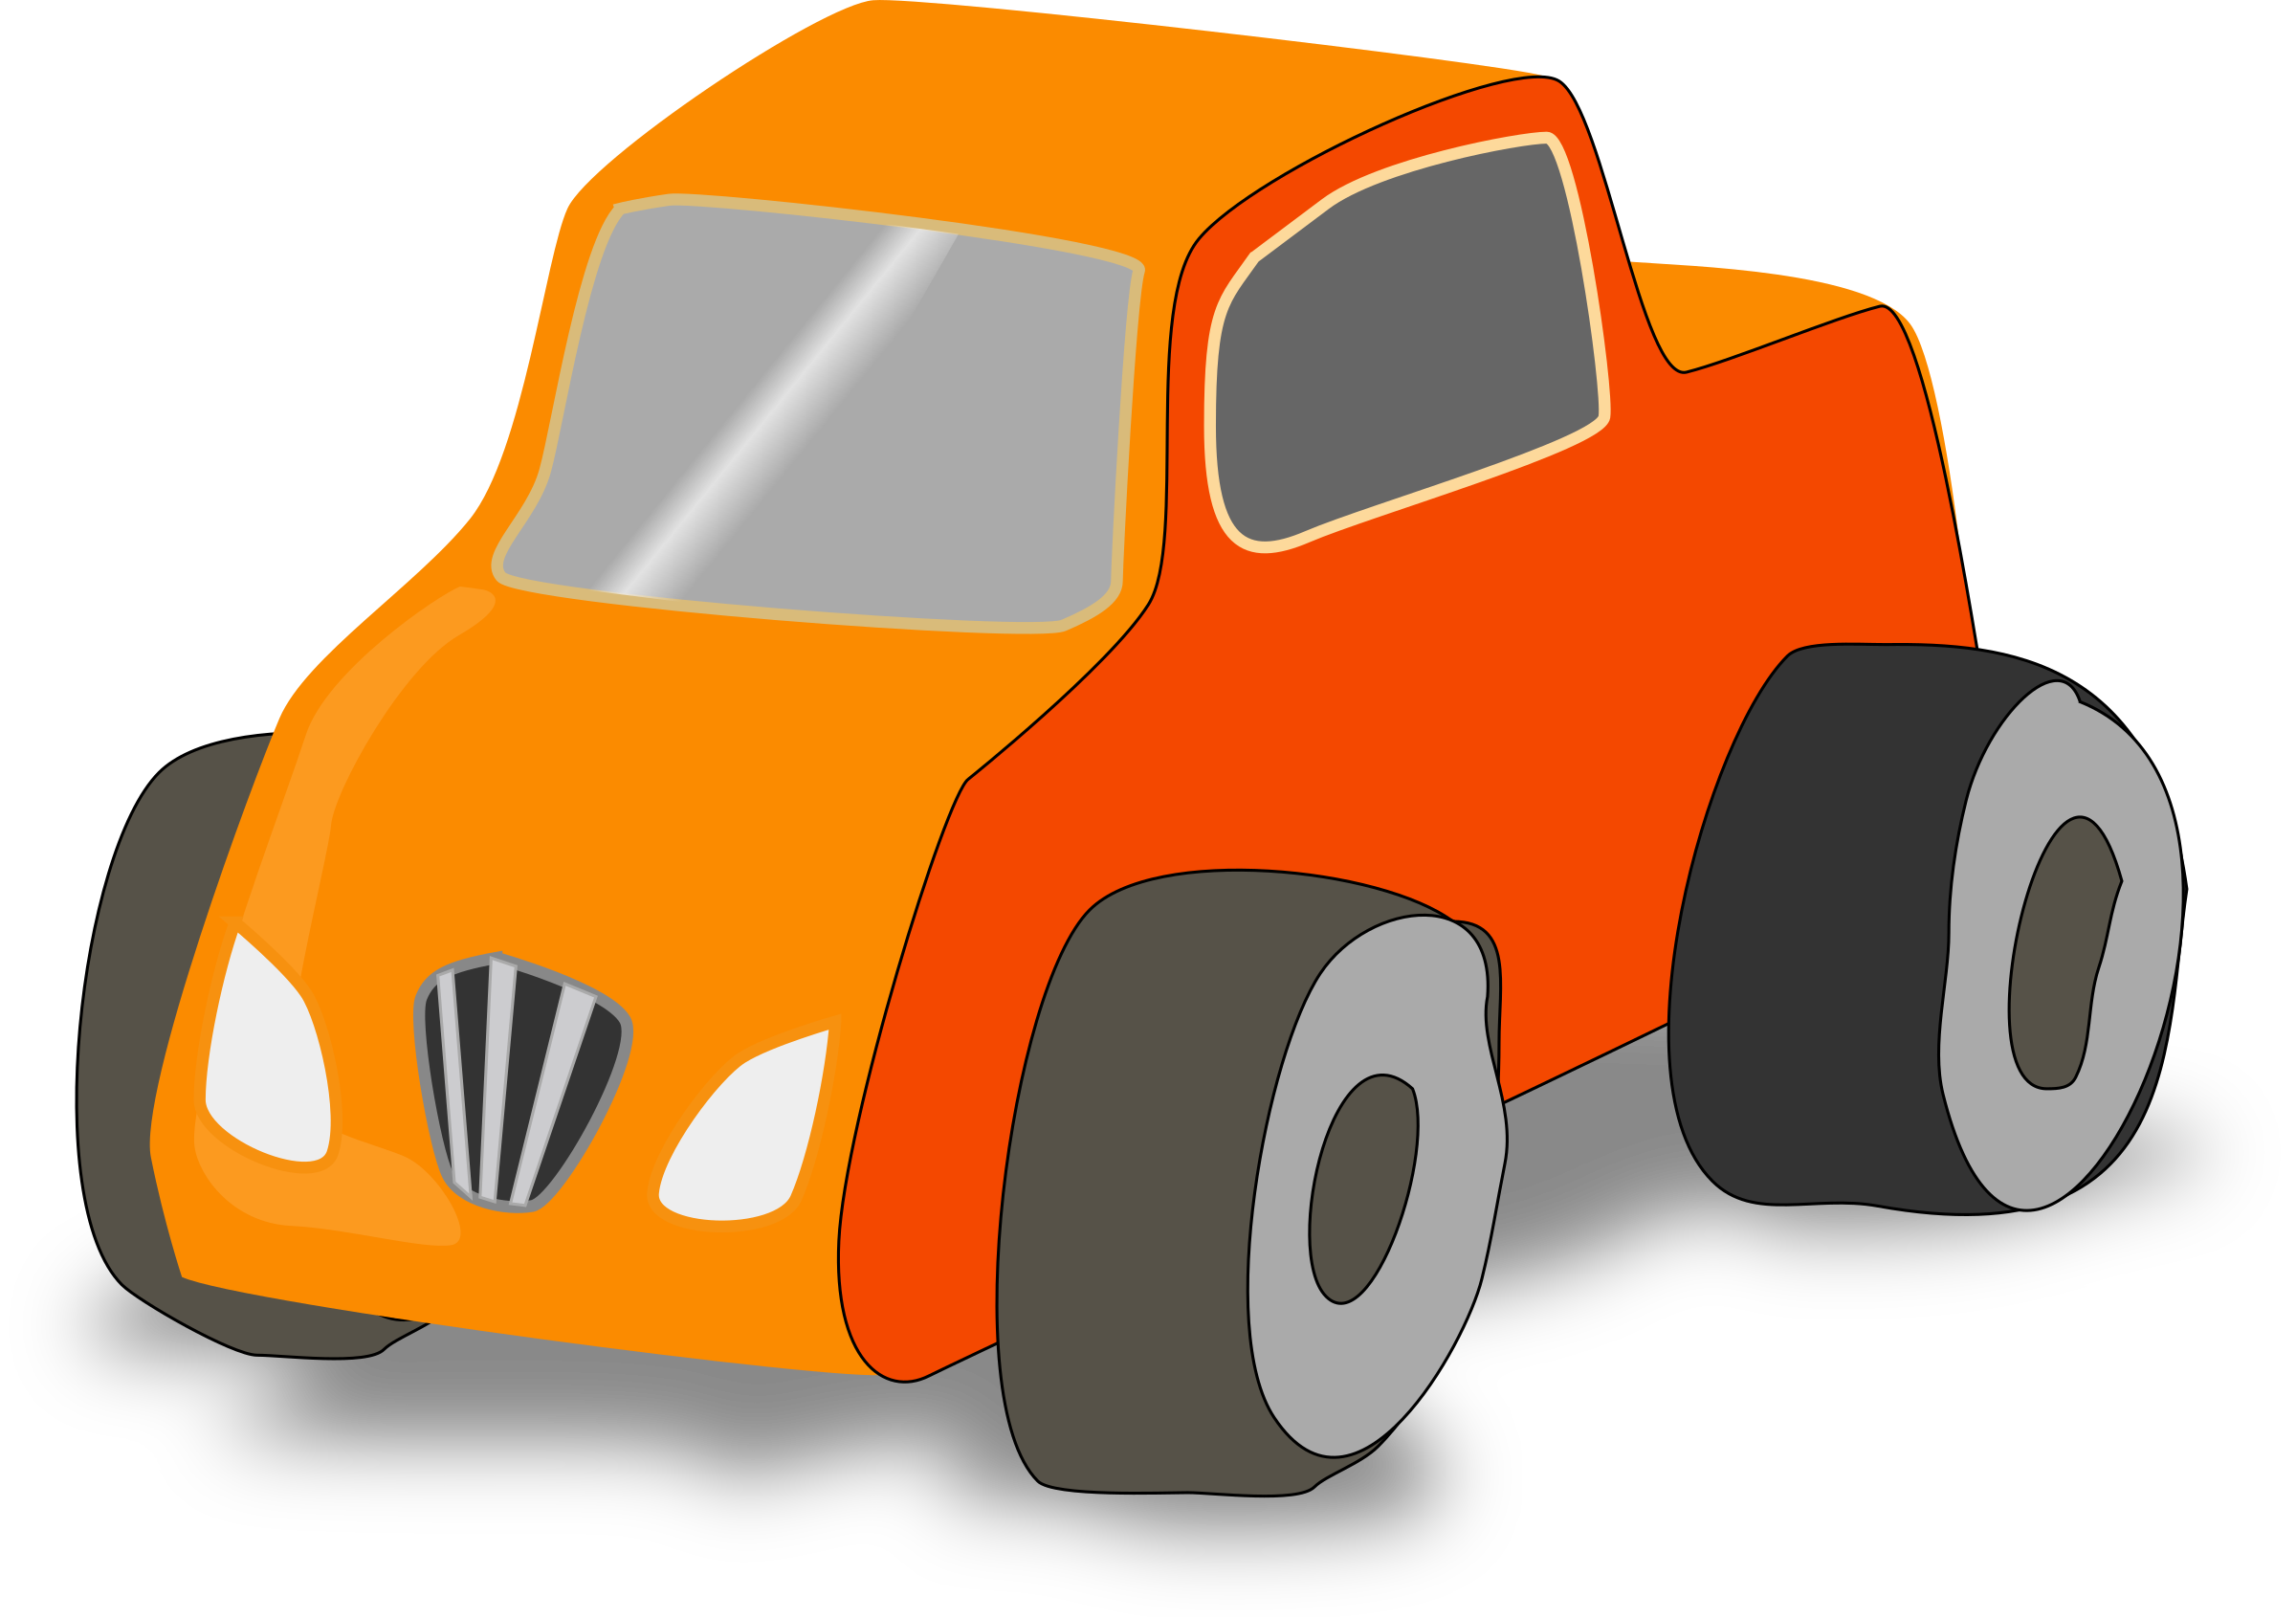 Toy car png. Simple truck icons free